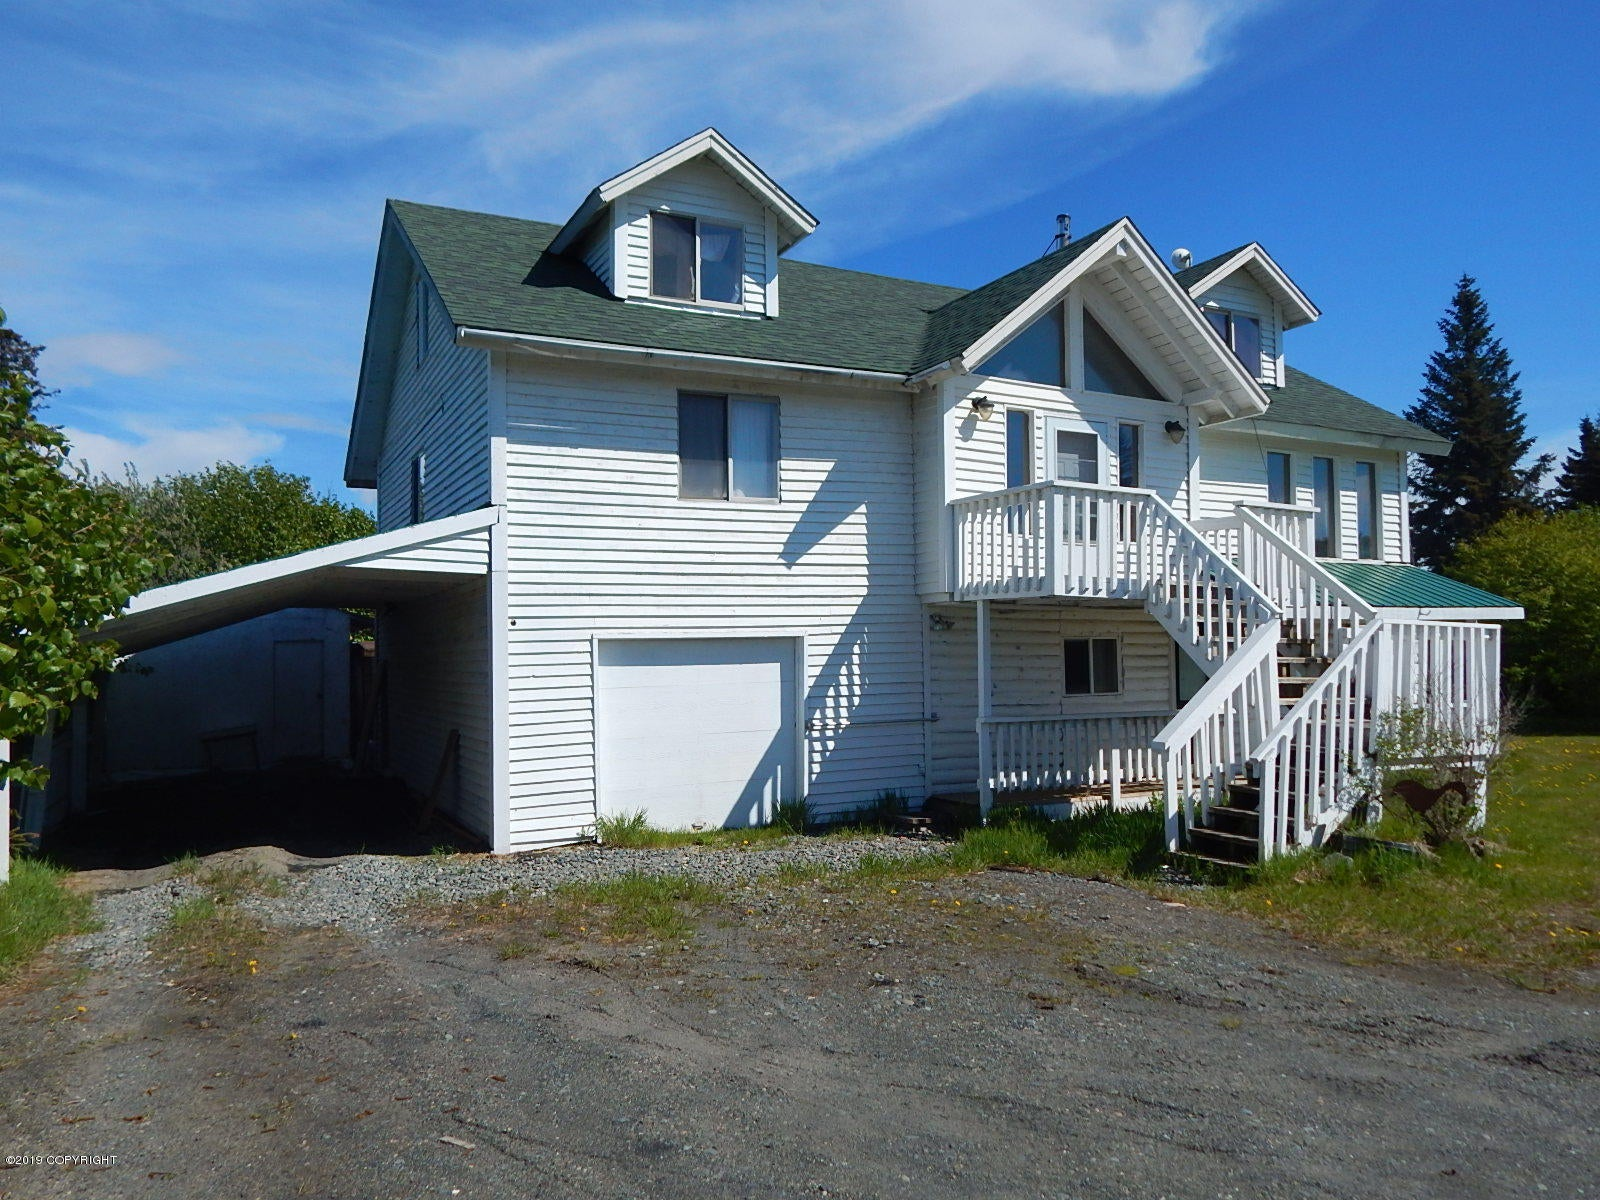 Image #58 of Property